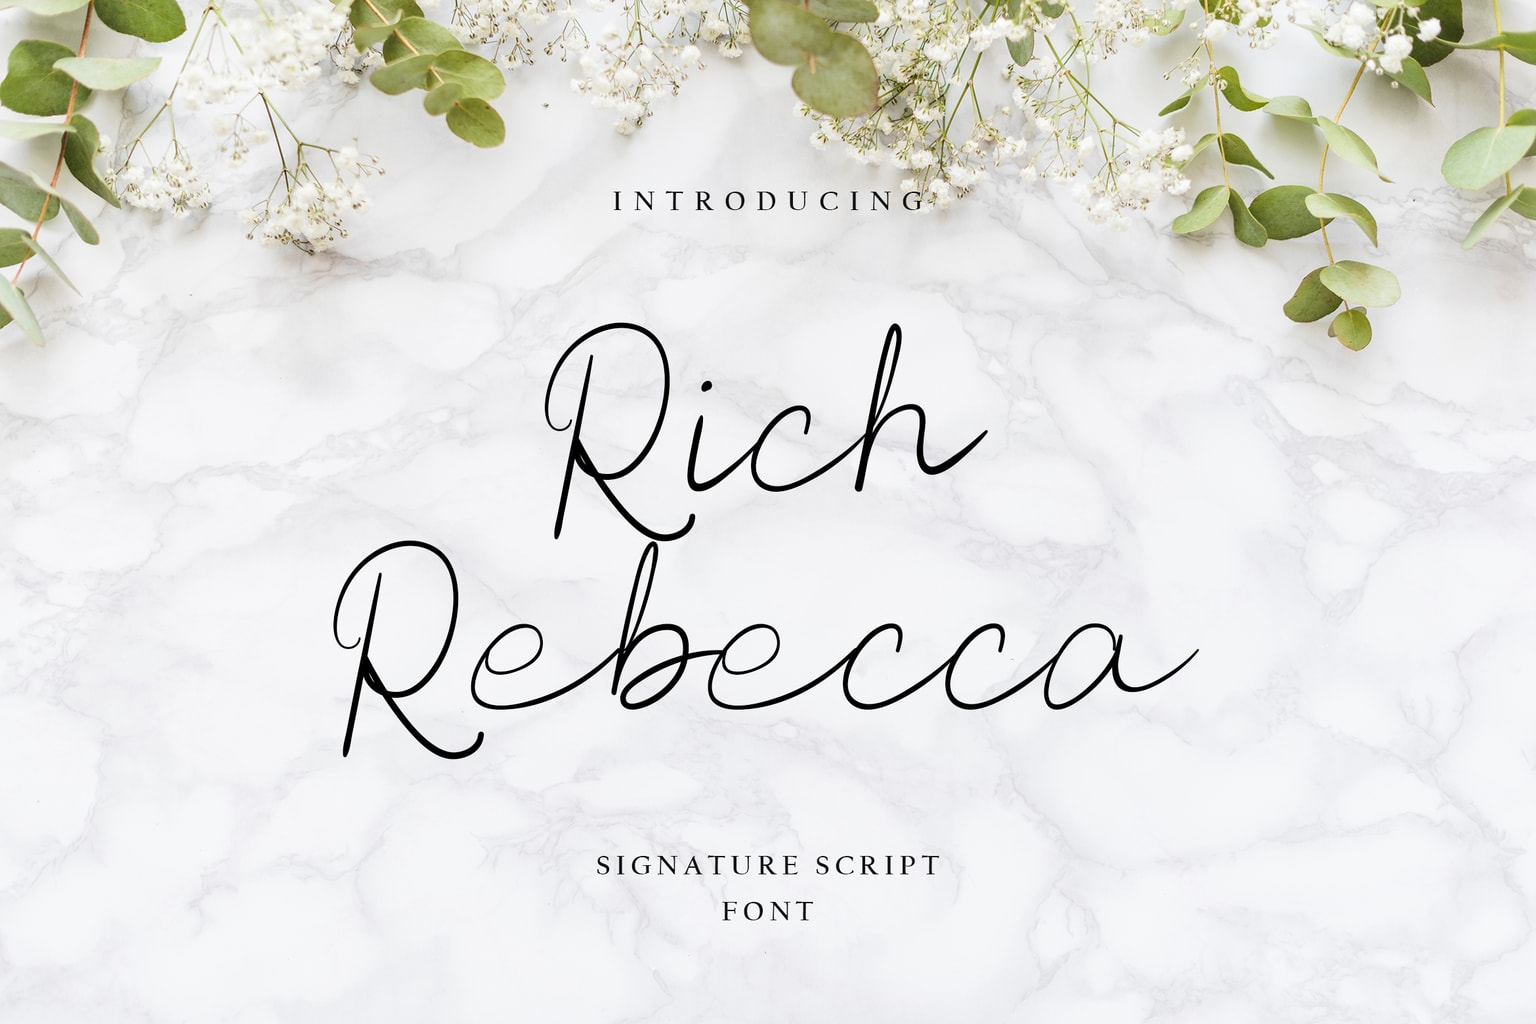 fonts rich rebbeca signature script